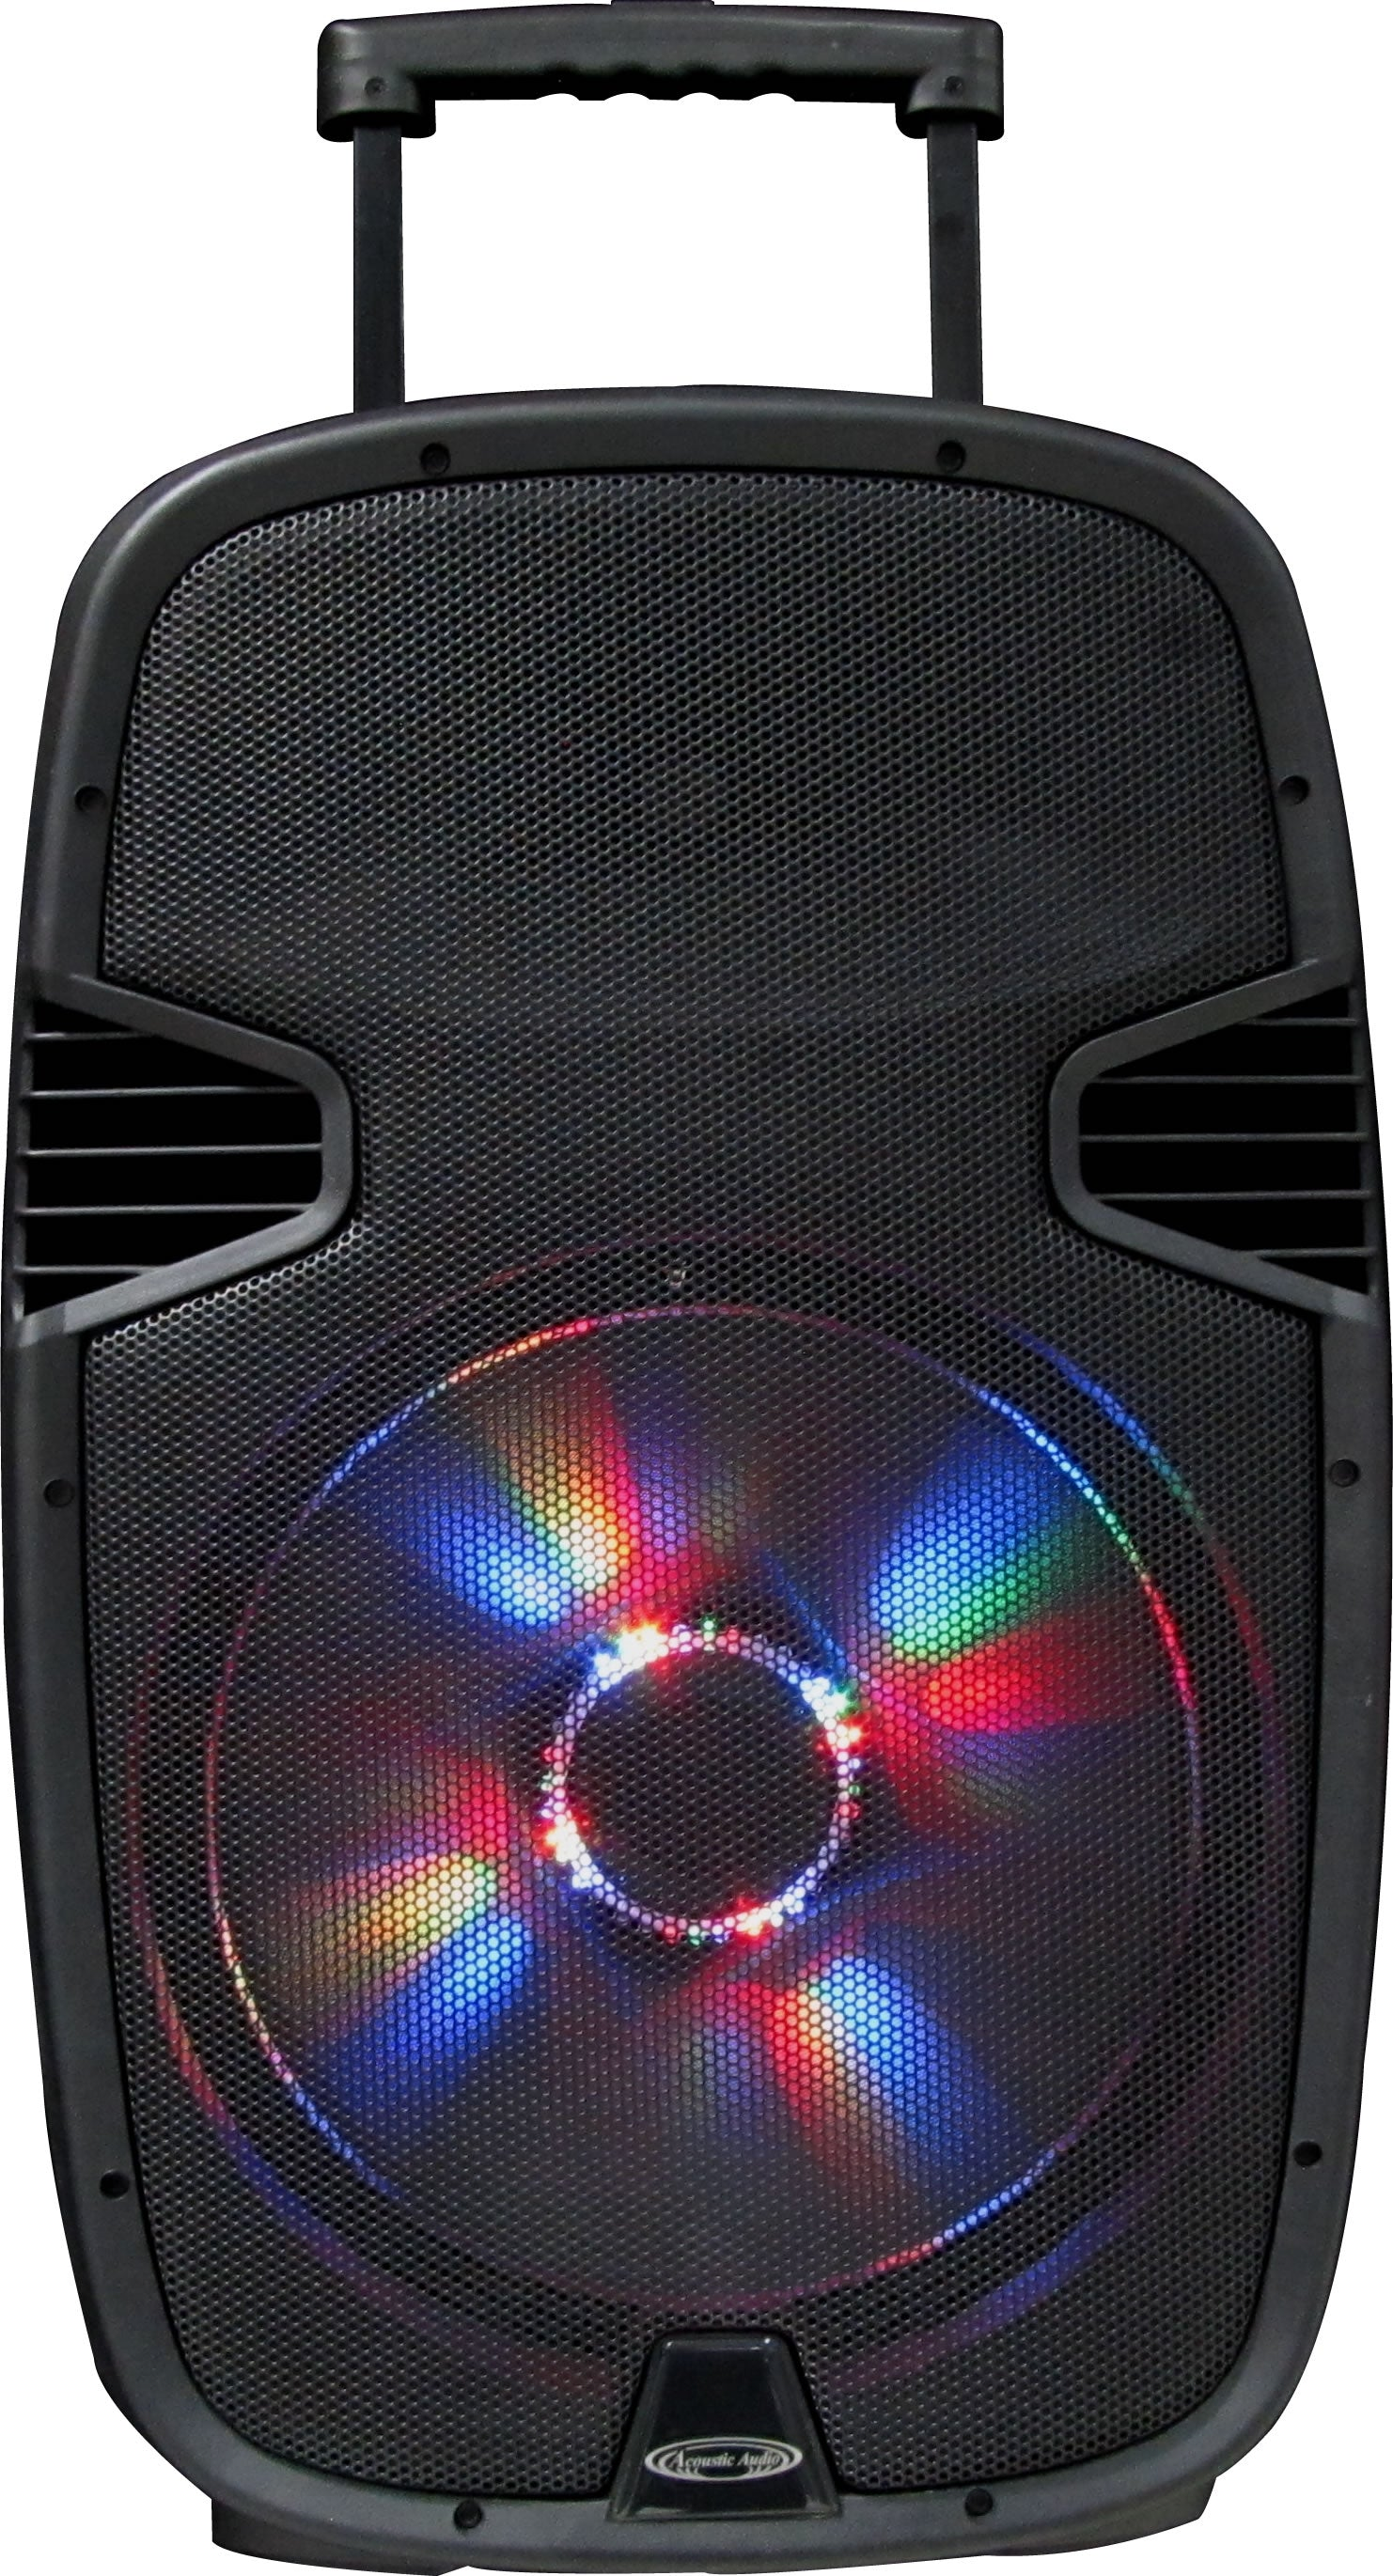 "87-4312TN-19 12"" Professional 2-Way Active Speaker Box with Built-in MP3 Player, Bluetooth & FM"